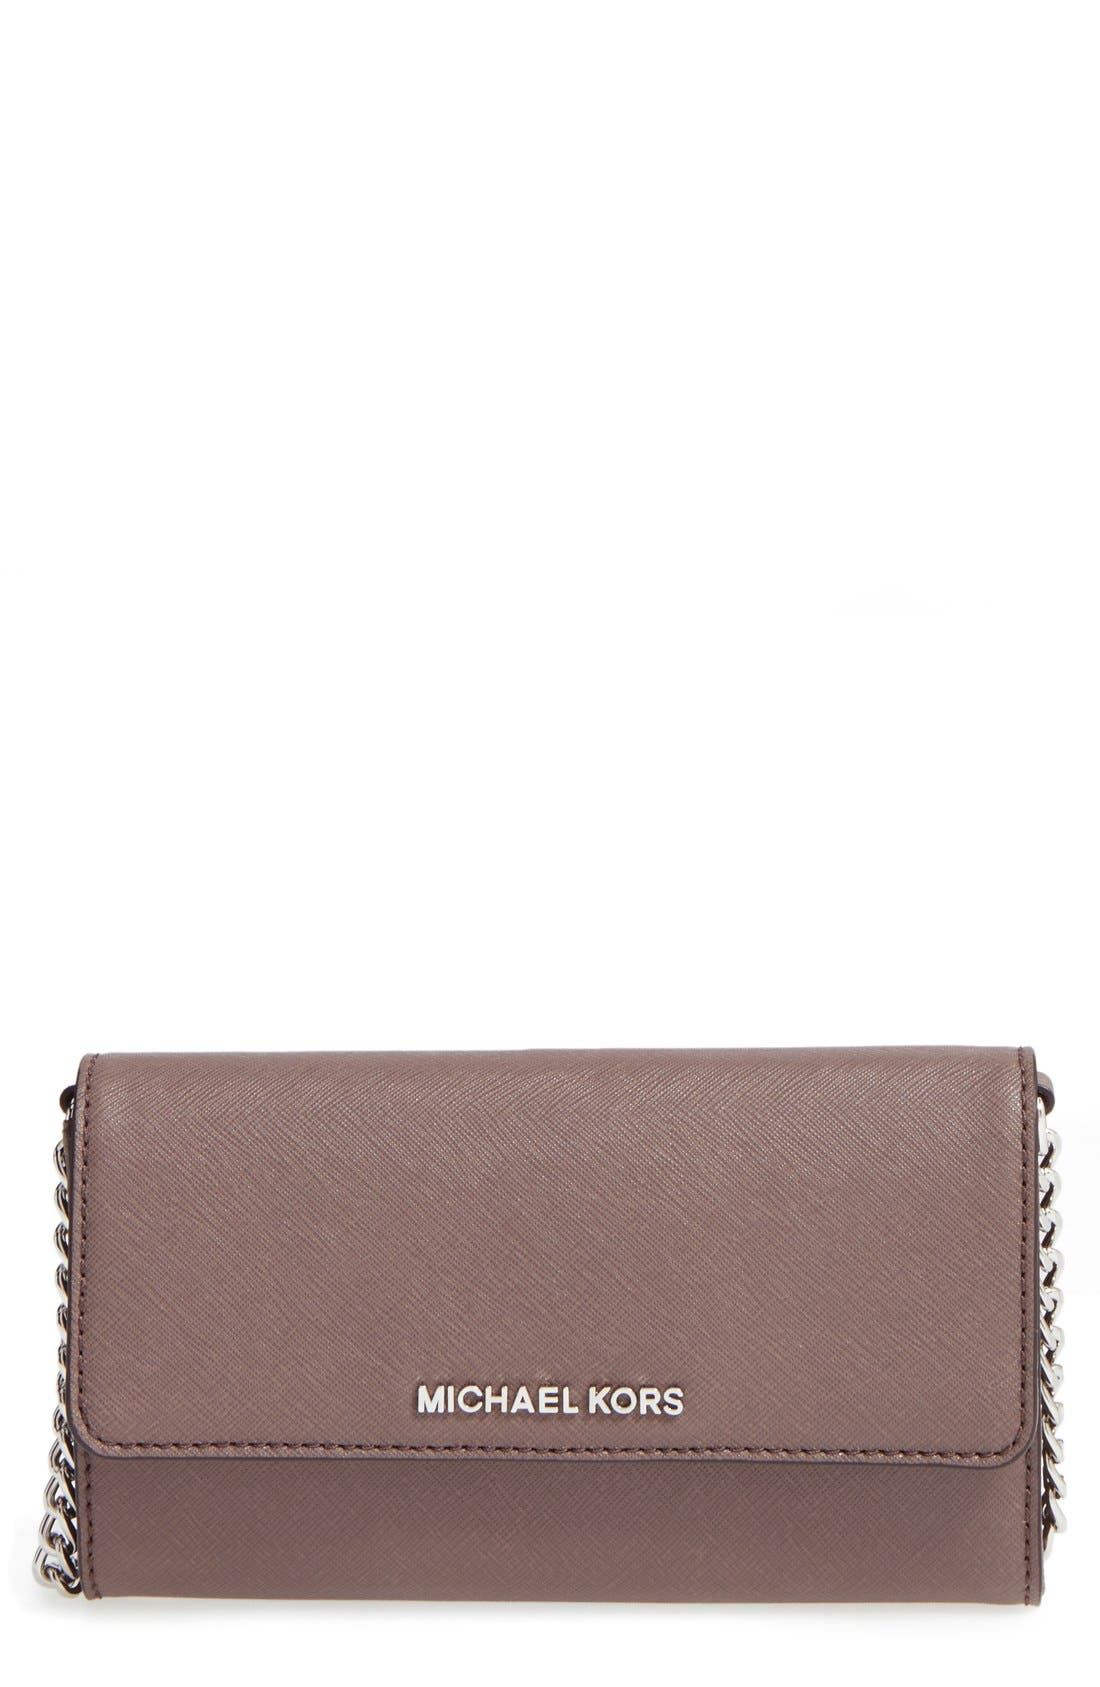 Main Image - MICHAEL Michael Kors 'Large Jet Set' Saffiano Leather Crossbody Bag